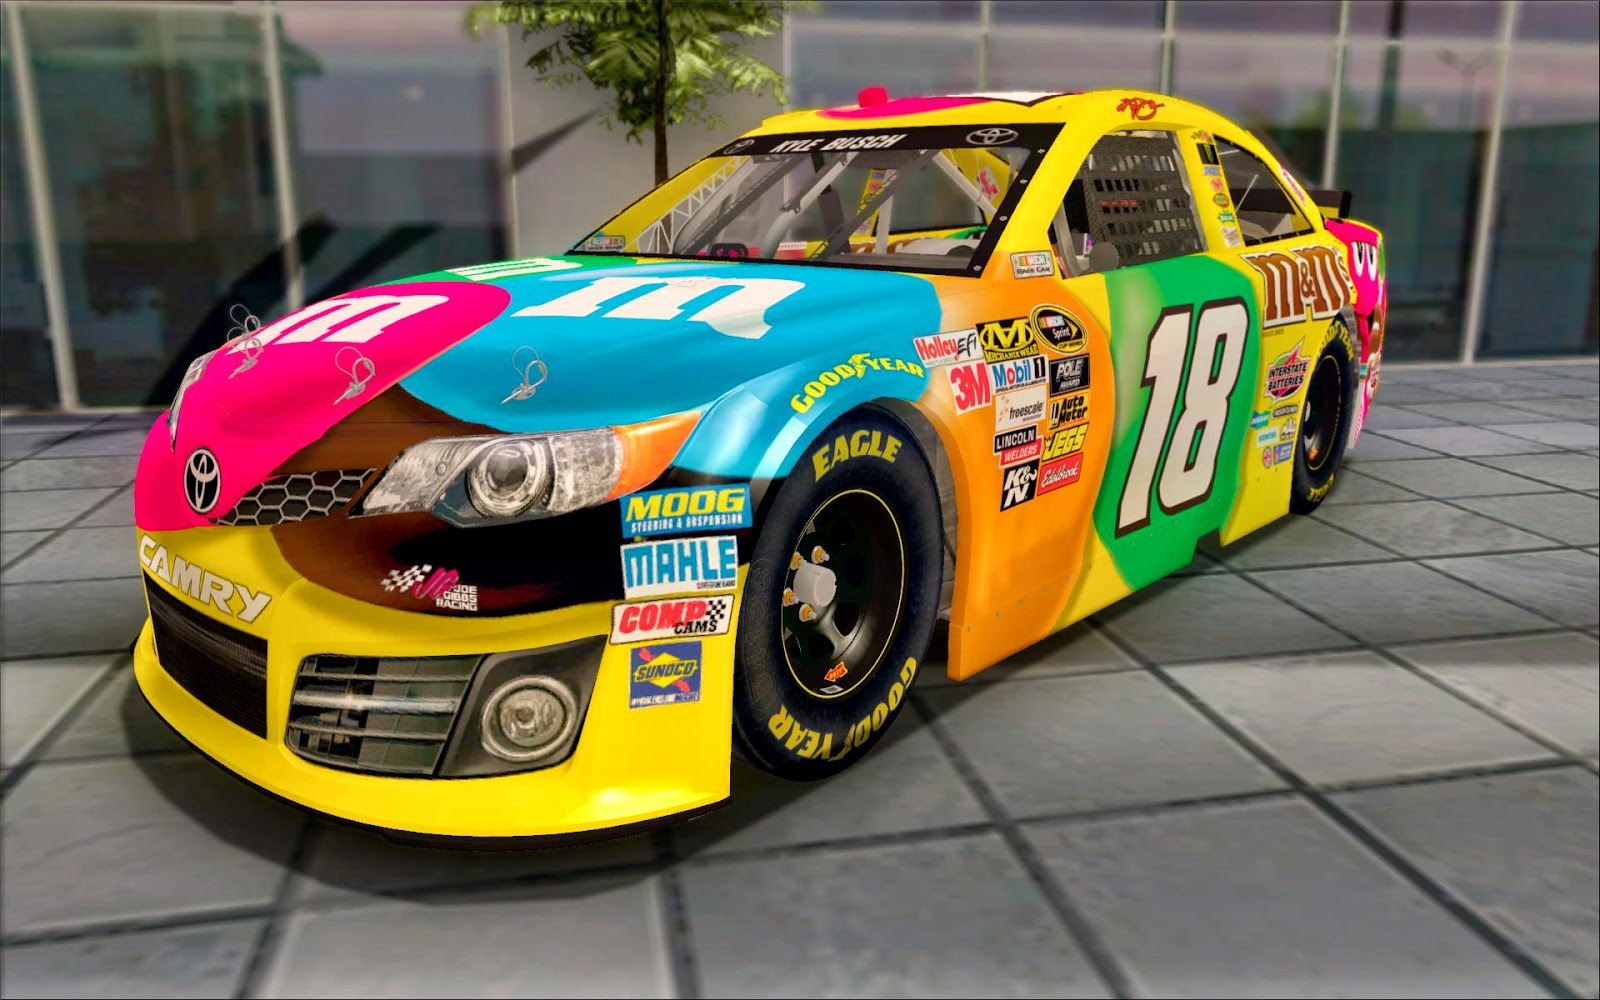 Grand Theft Auto : San Andreas NASCAR: Kyle Busch Paint ...